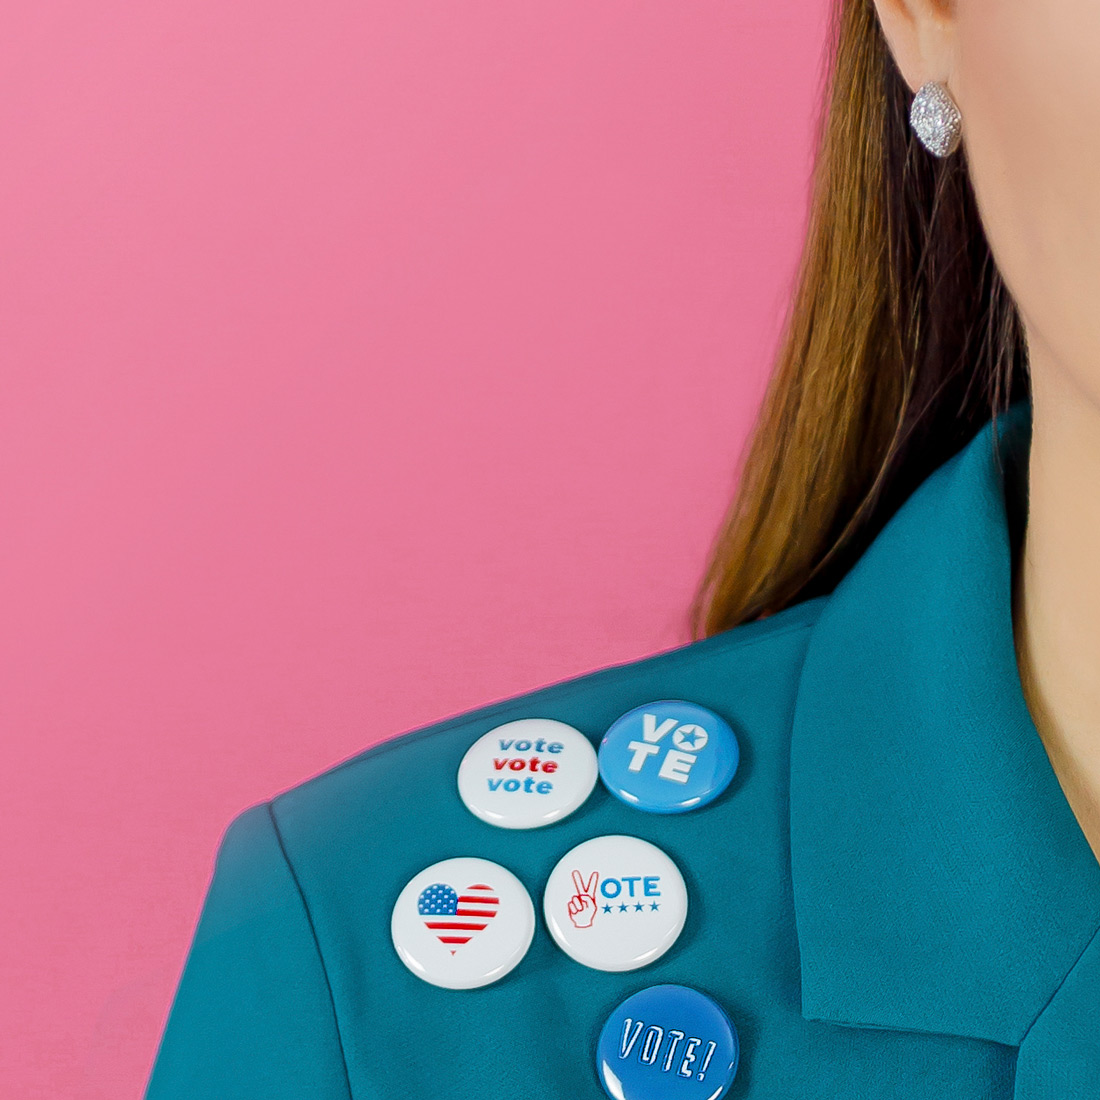 Jennifer Lake Politician Buttons